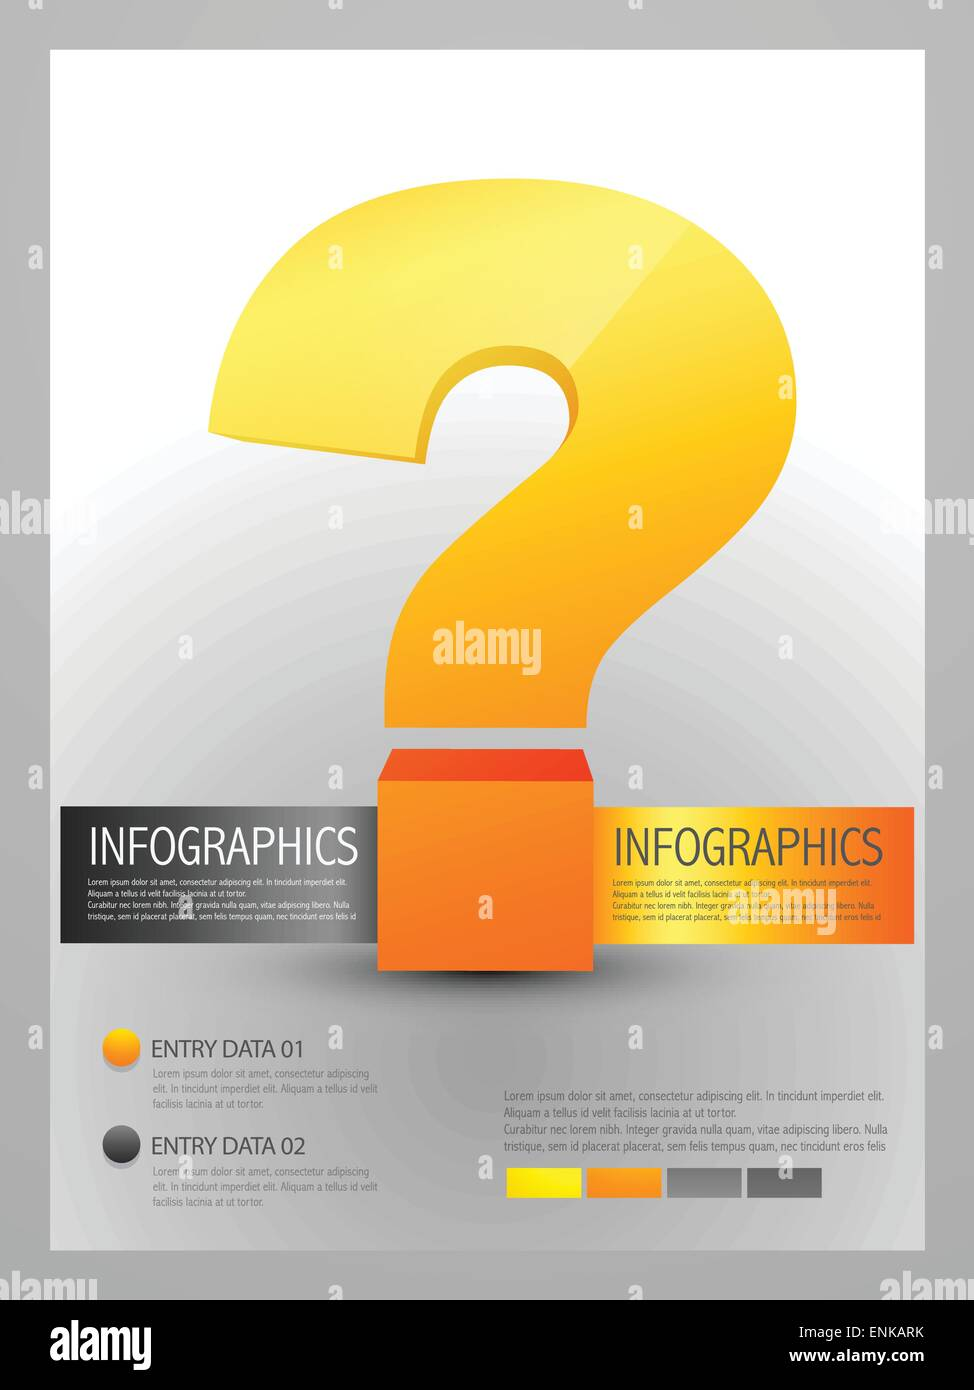 vector infographic template of question mark stock vector art